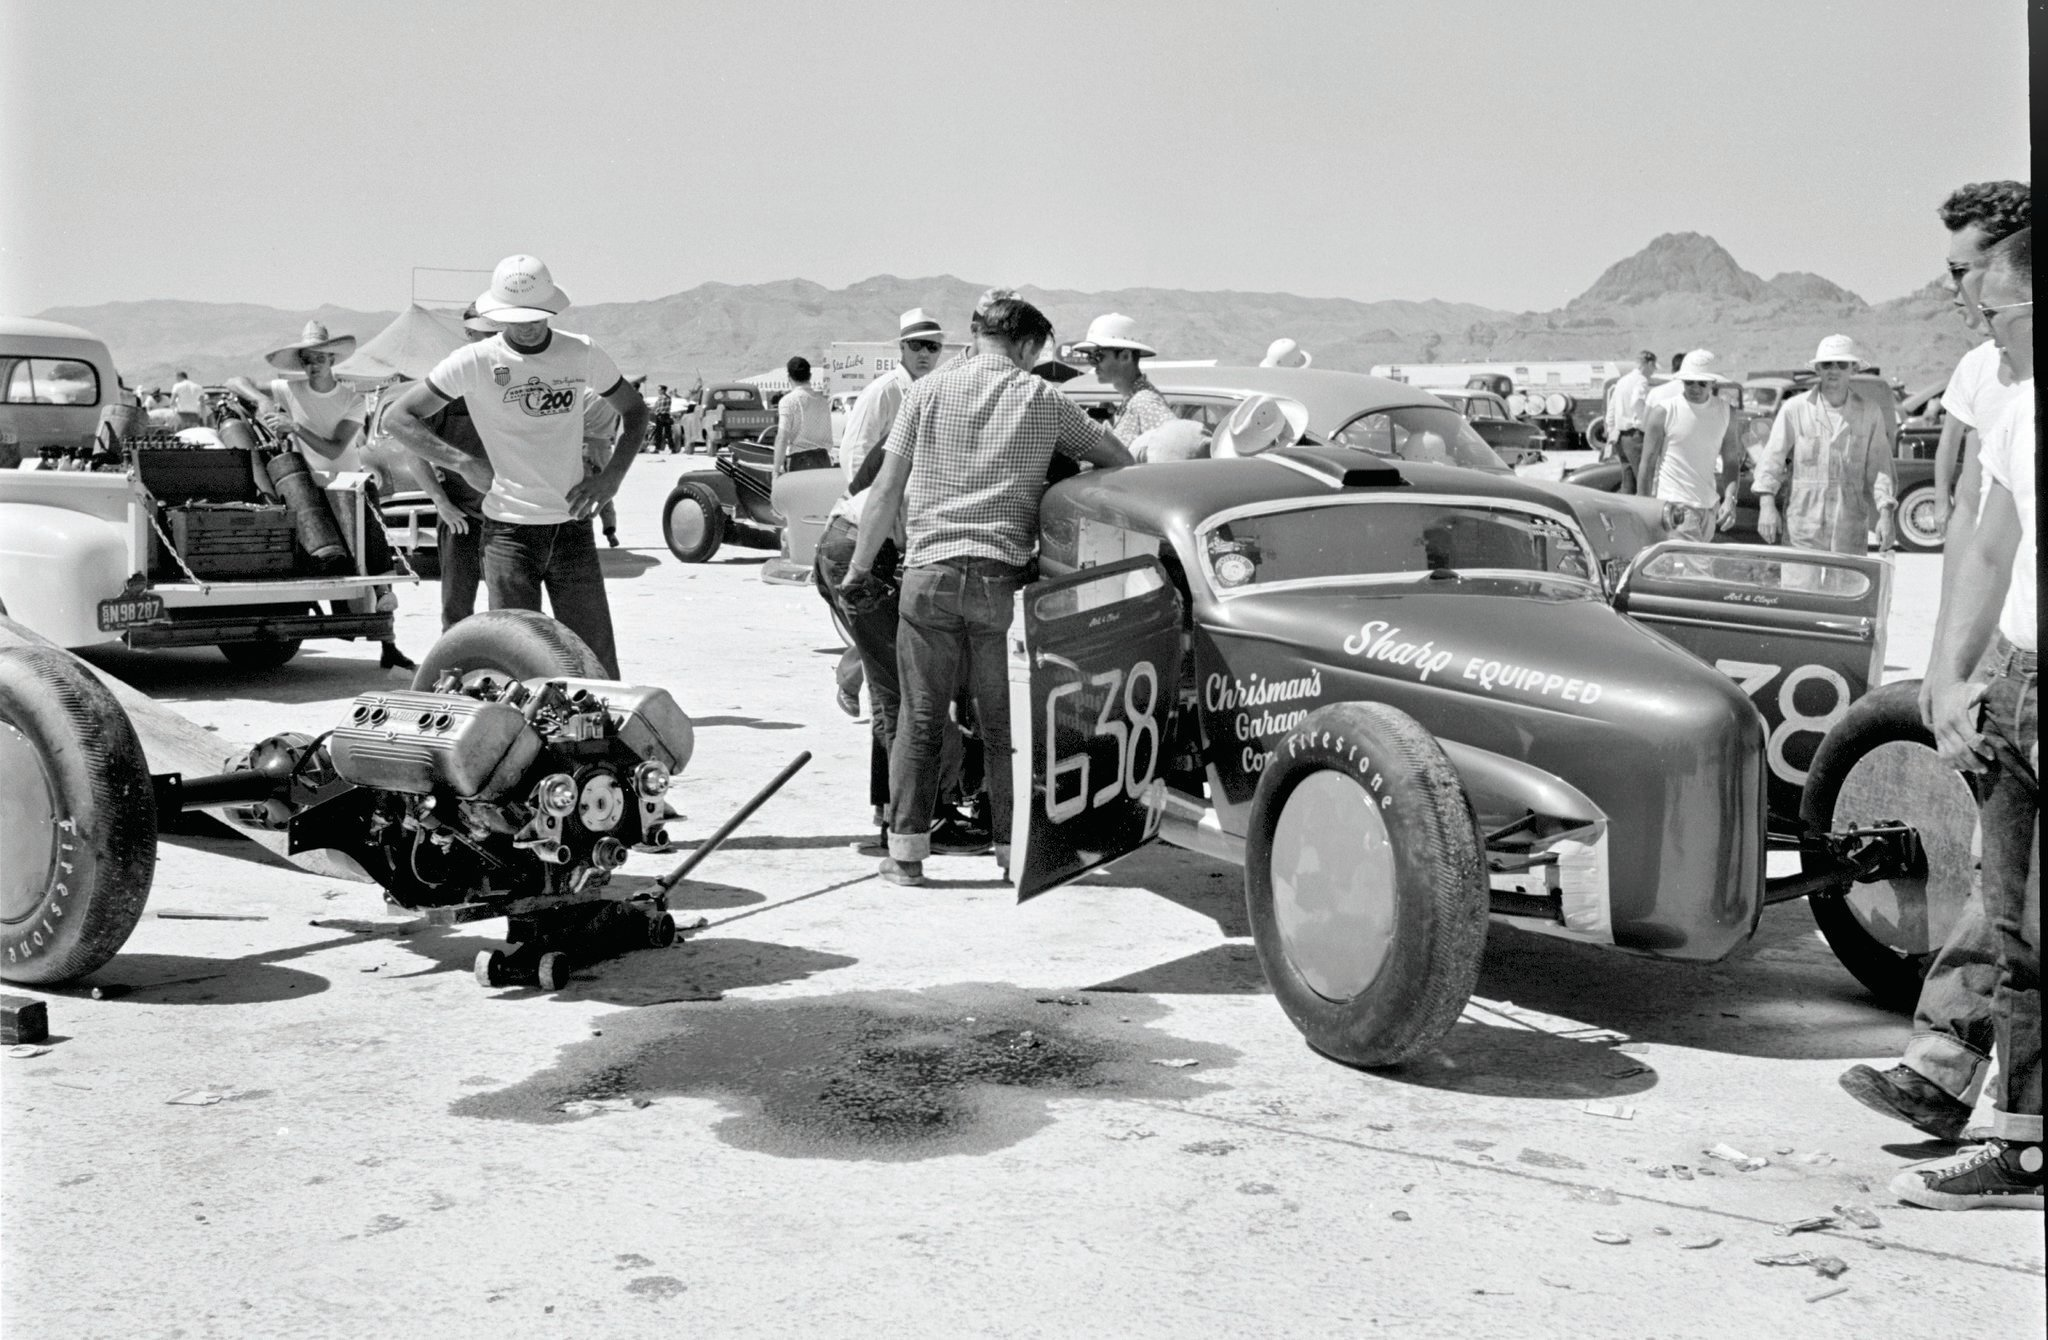 The Chrisman competition coupe: 160.178 mph using Ardun heads on a Merc flathead.